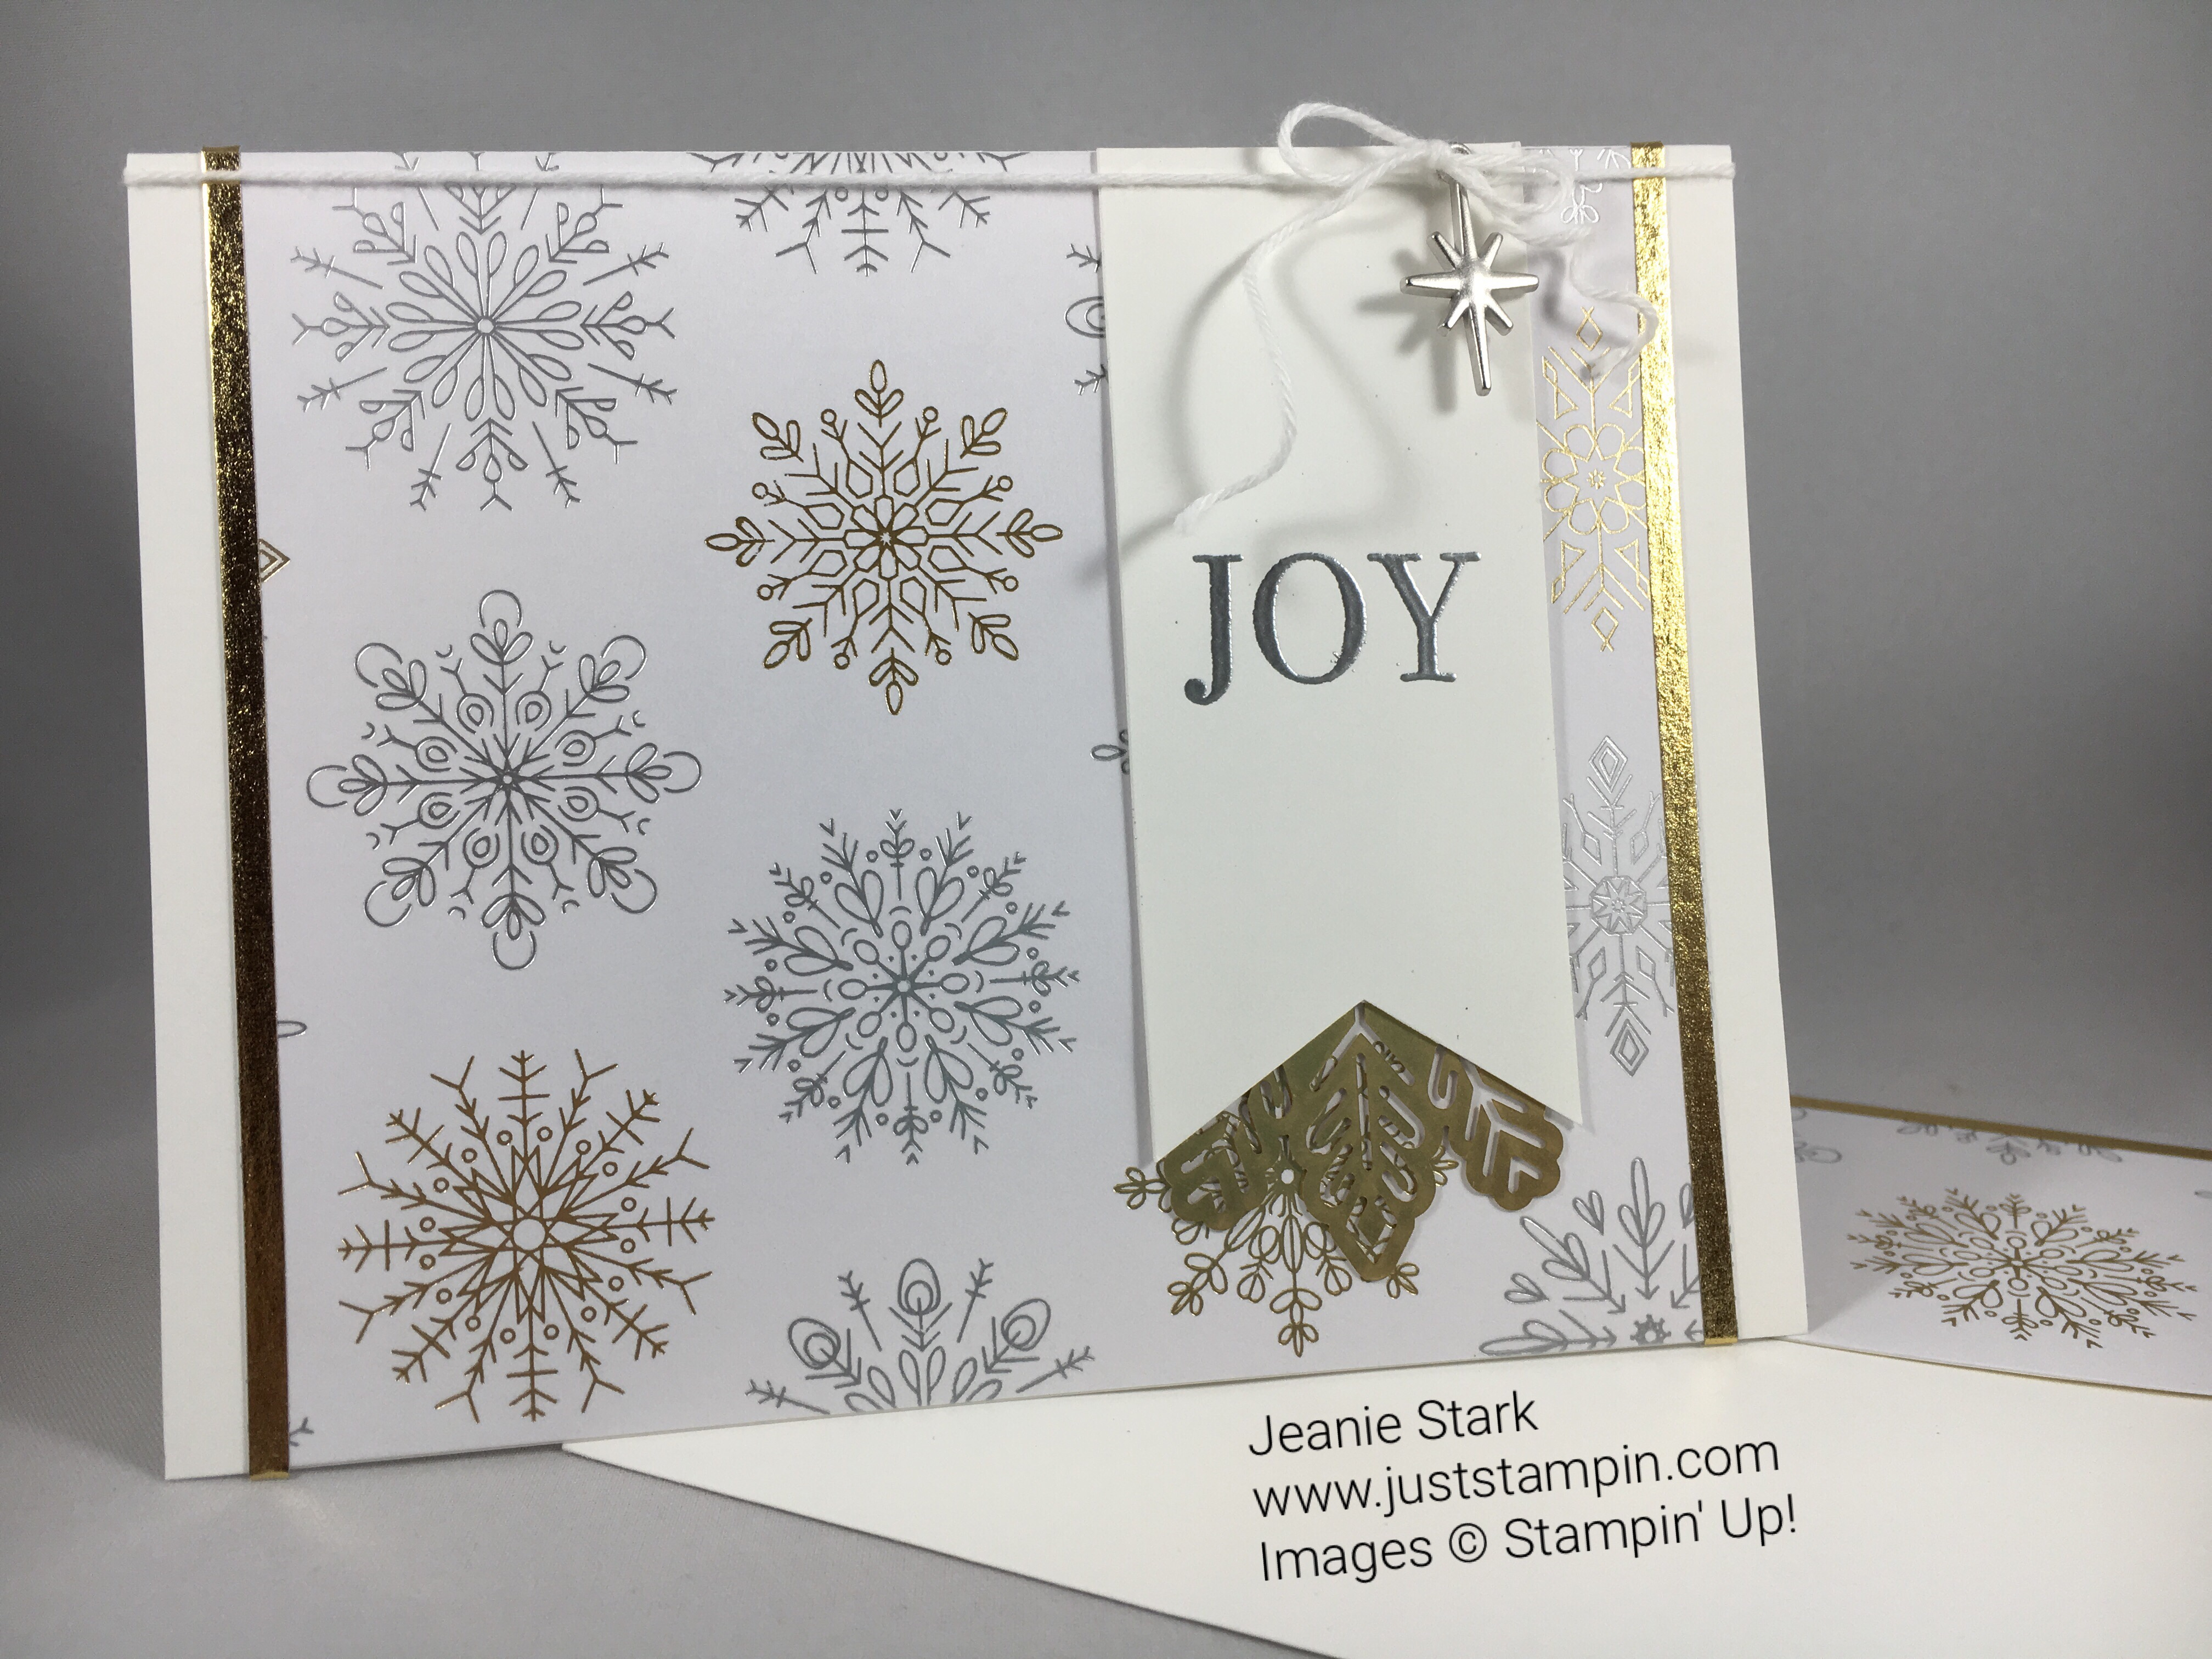 Joy card made using products from the Stampin Up Year of Cheer Suite. For inspiration and more visit www.juststampin.com